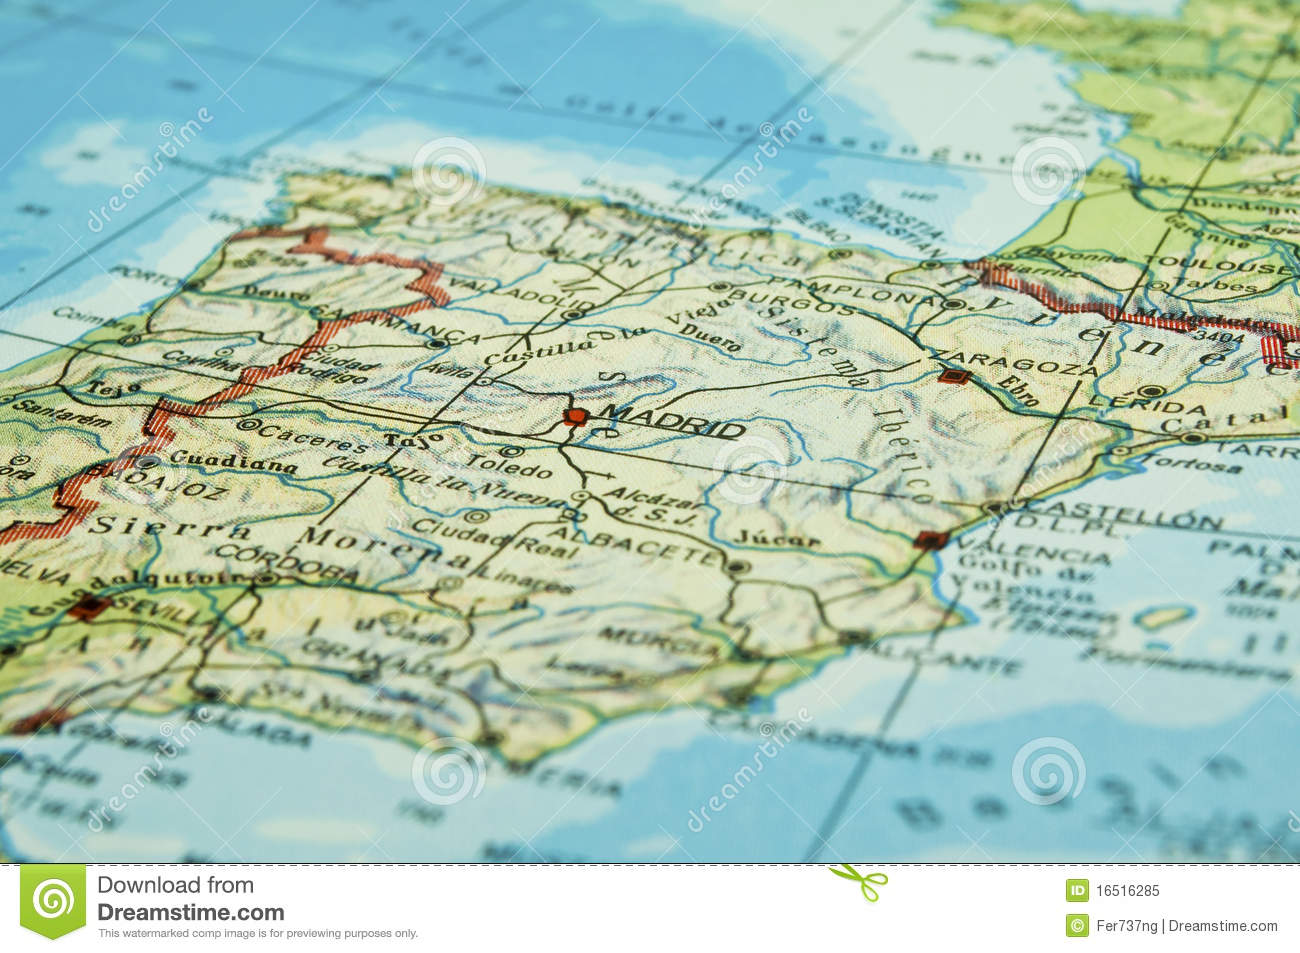 Map Of Spain Coast.Map Of Spain Stock Image Image Of Coast Geography 16516285